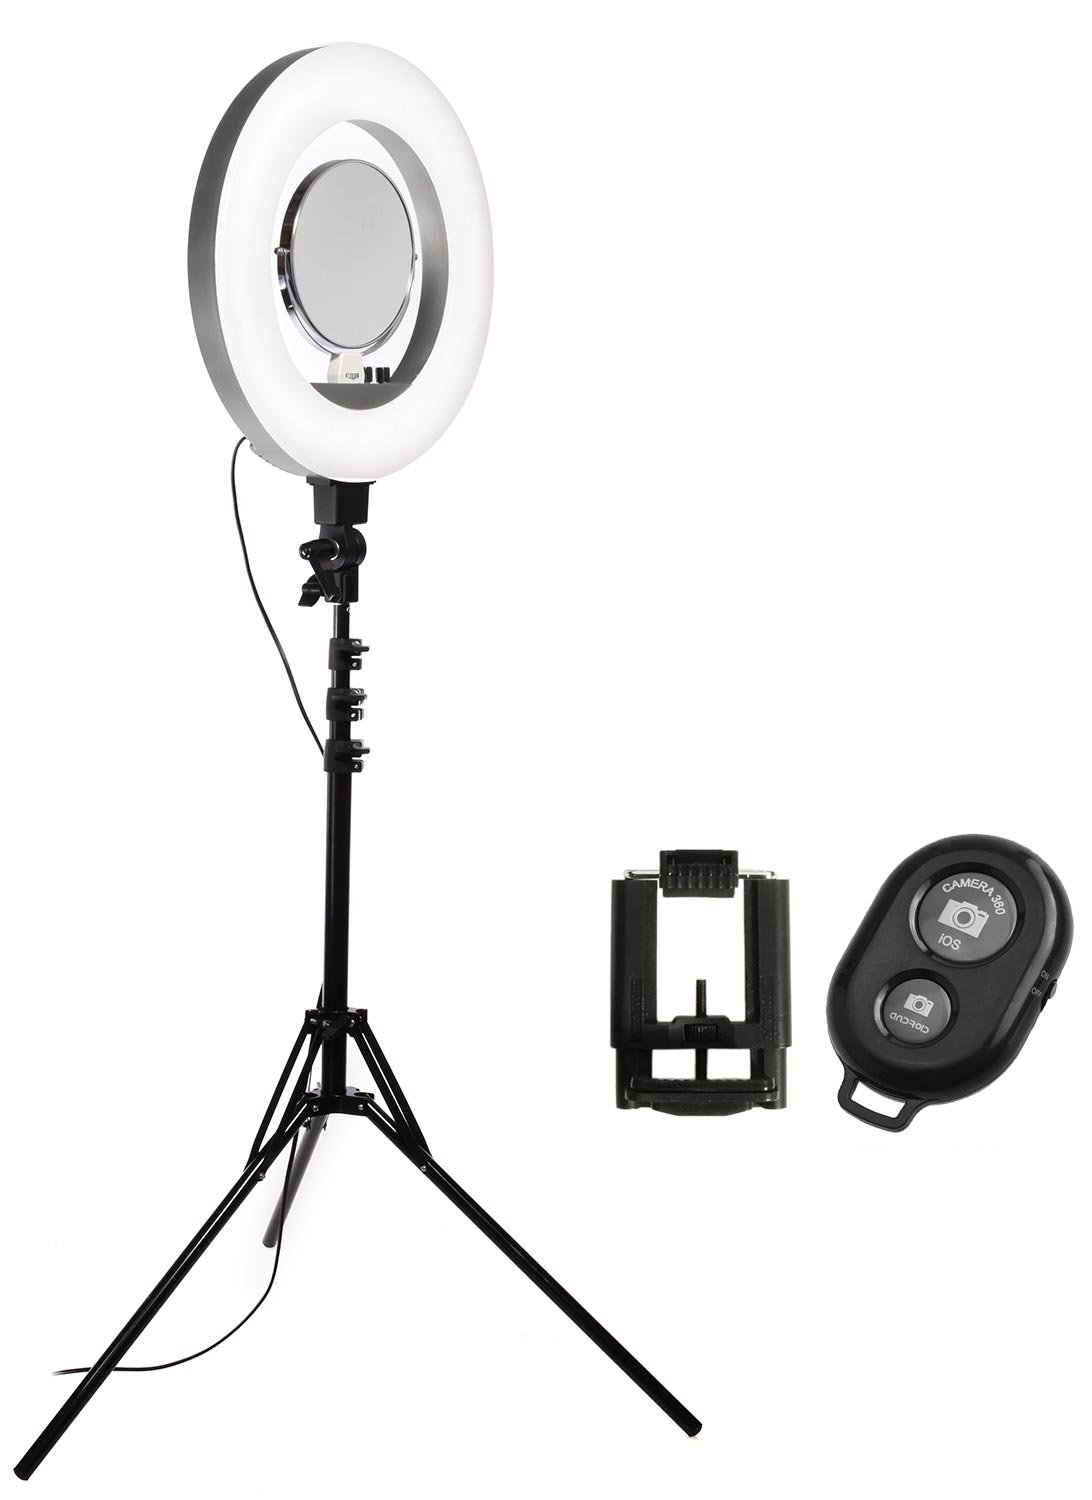 Calumet 18'' LED Diva II Ring Light (Silver) w/Wireless Bluetooth Camera Shutter Remote Control for IOS & Android Phones and Universal Smartphone Tripod Mount & Adapter For Most Smartphones by Calumet